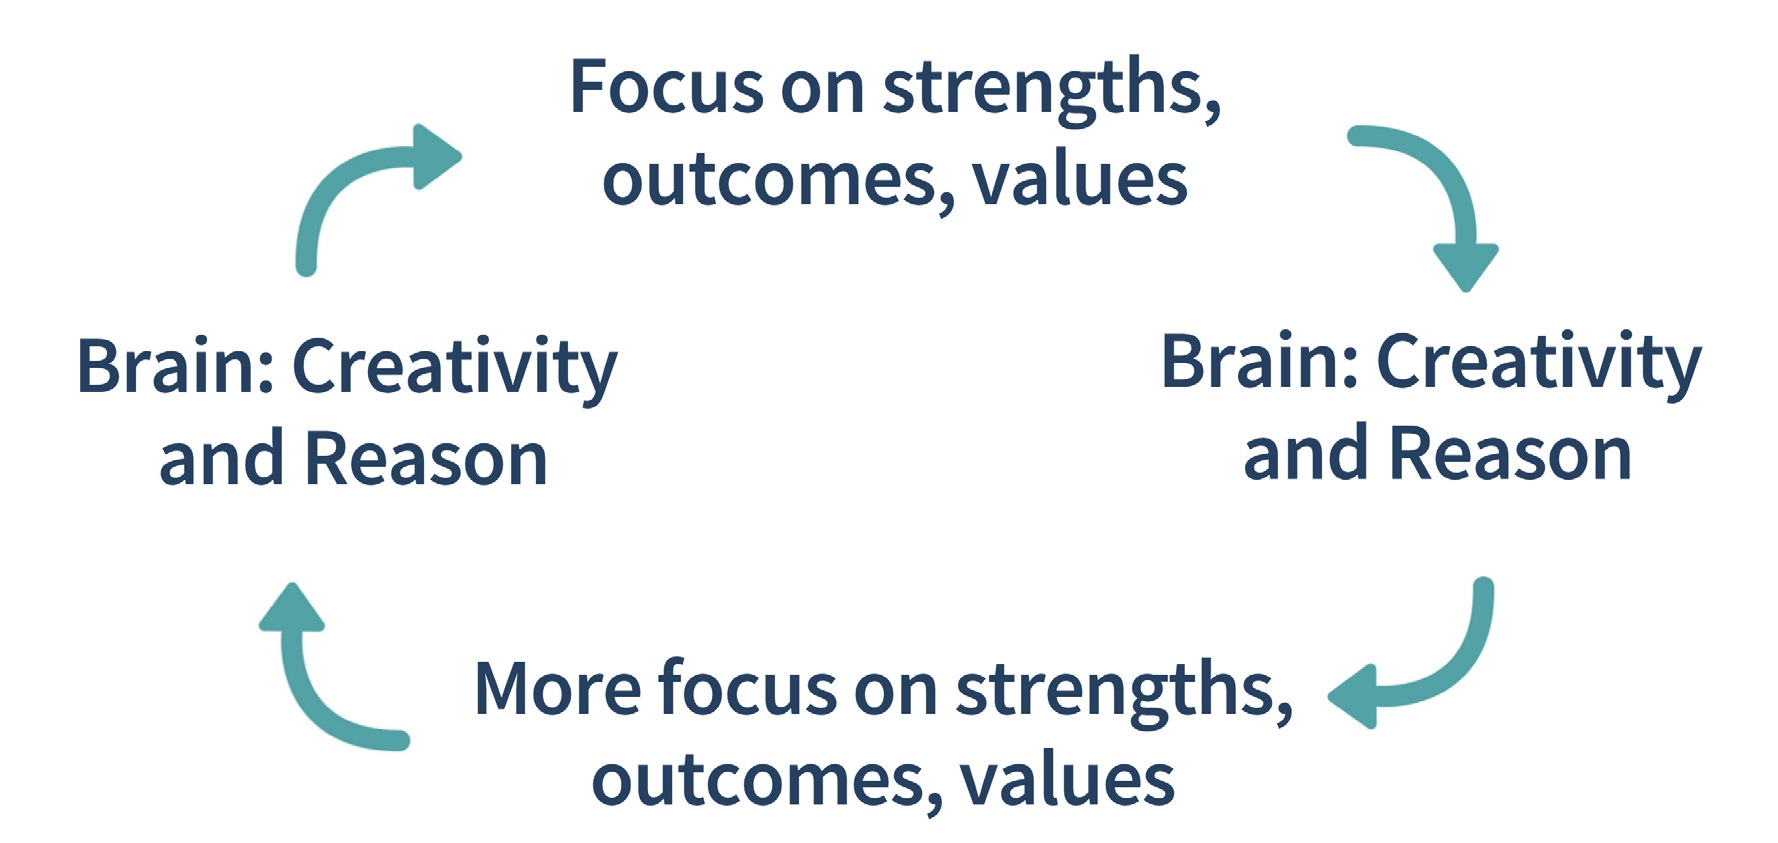 Strength-based listening loop - focus on strengths, aspirations, values, which leads to creativity and wisdom, which leads to more focus on strengths, which leads to more creativity, etc.